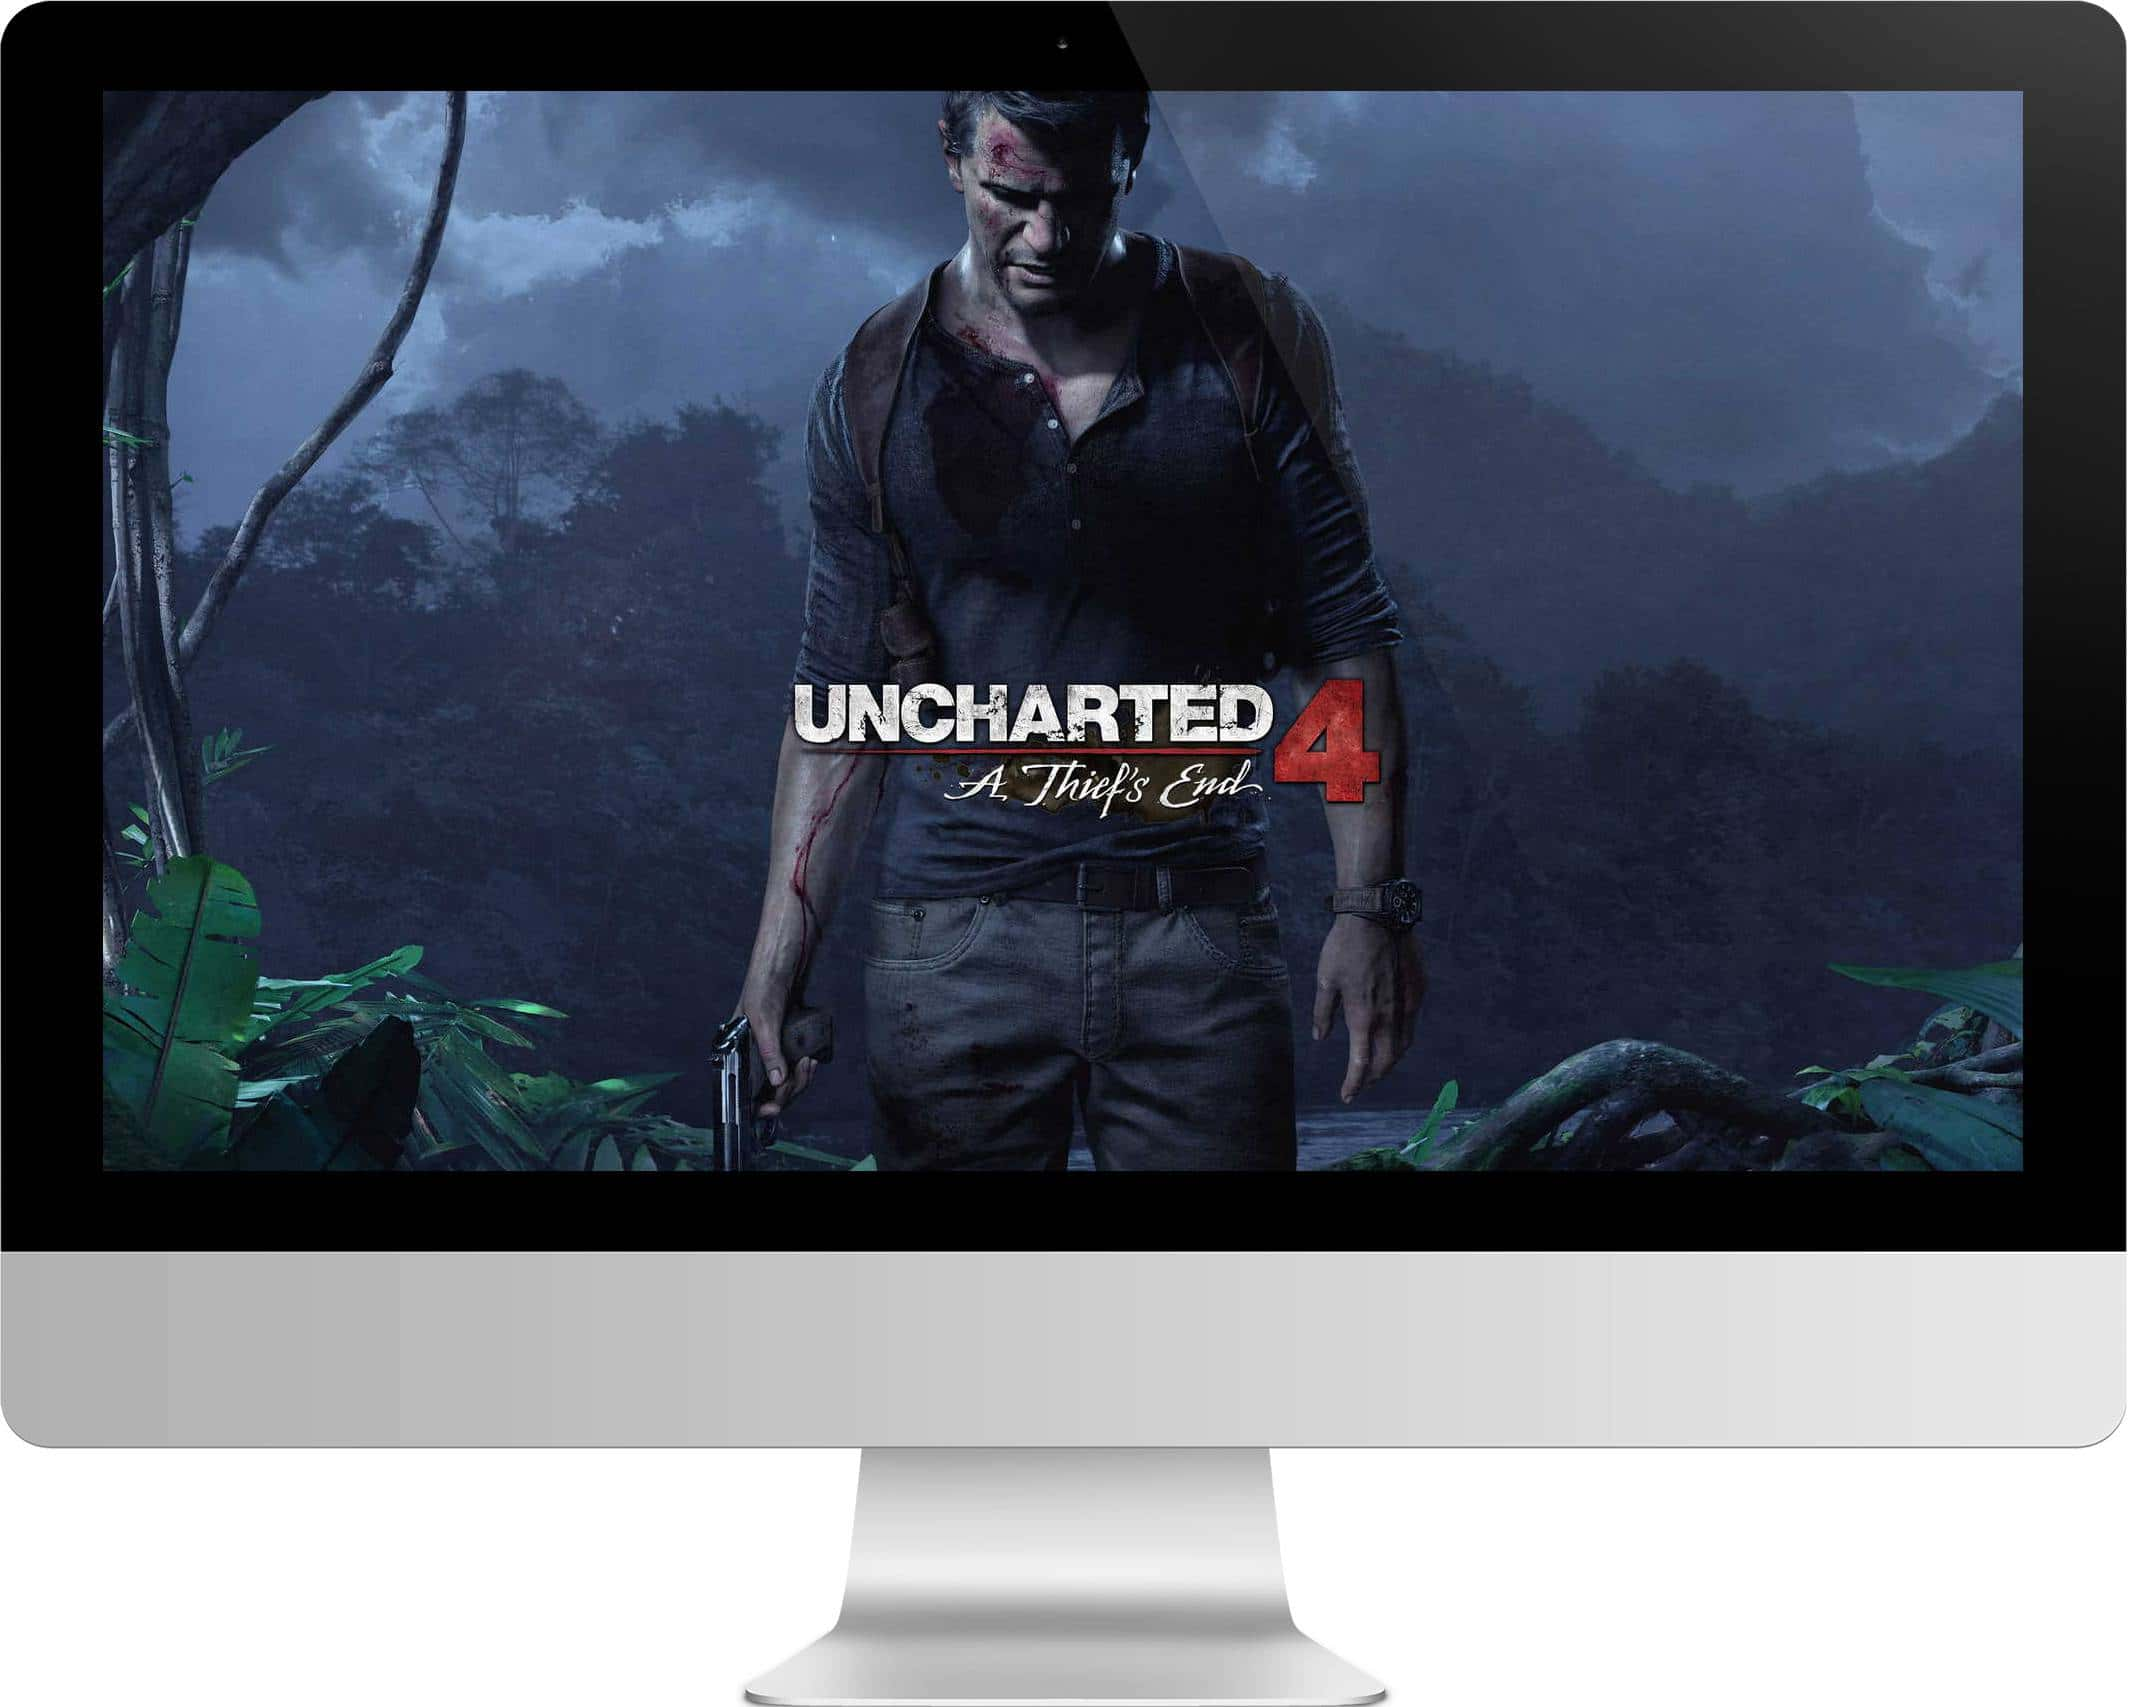 Uncharted 4 Cover 1080p - HD Wallpaper